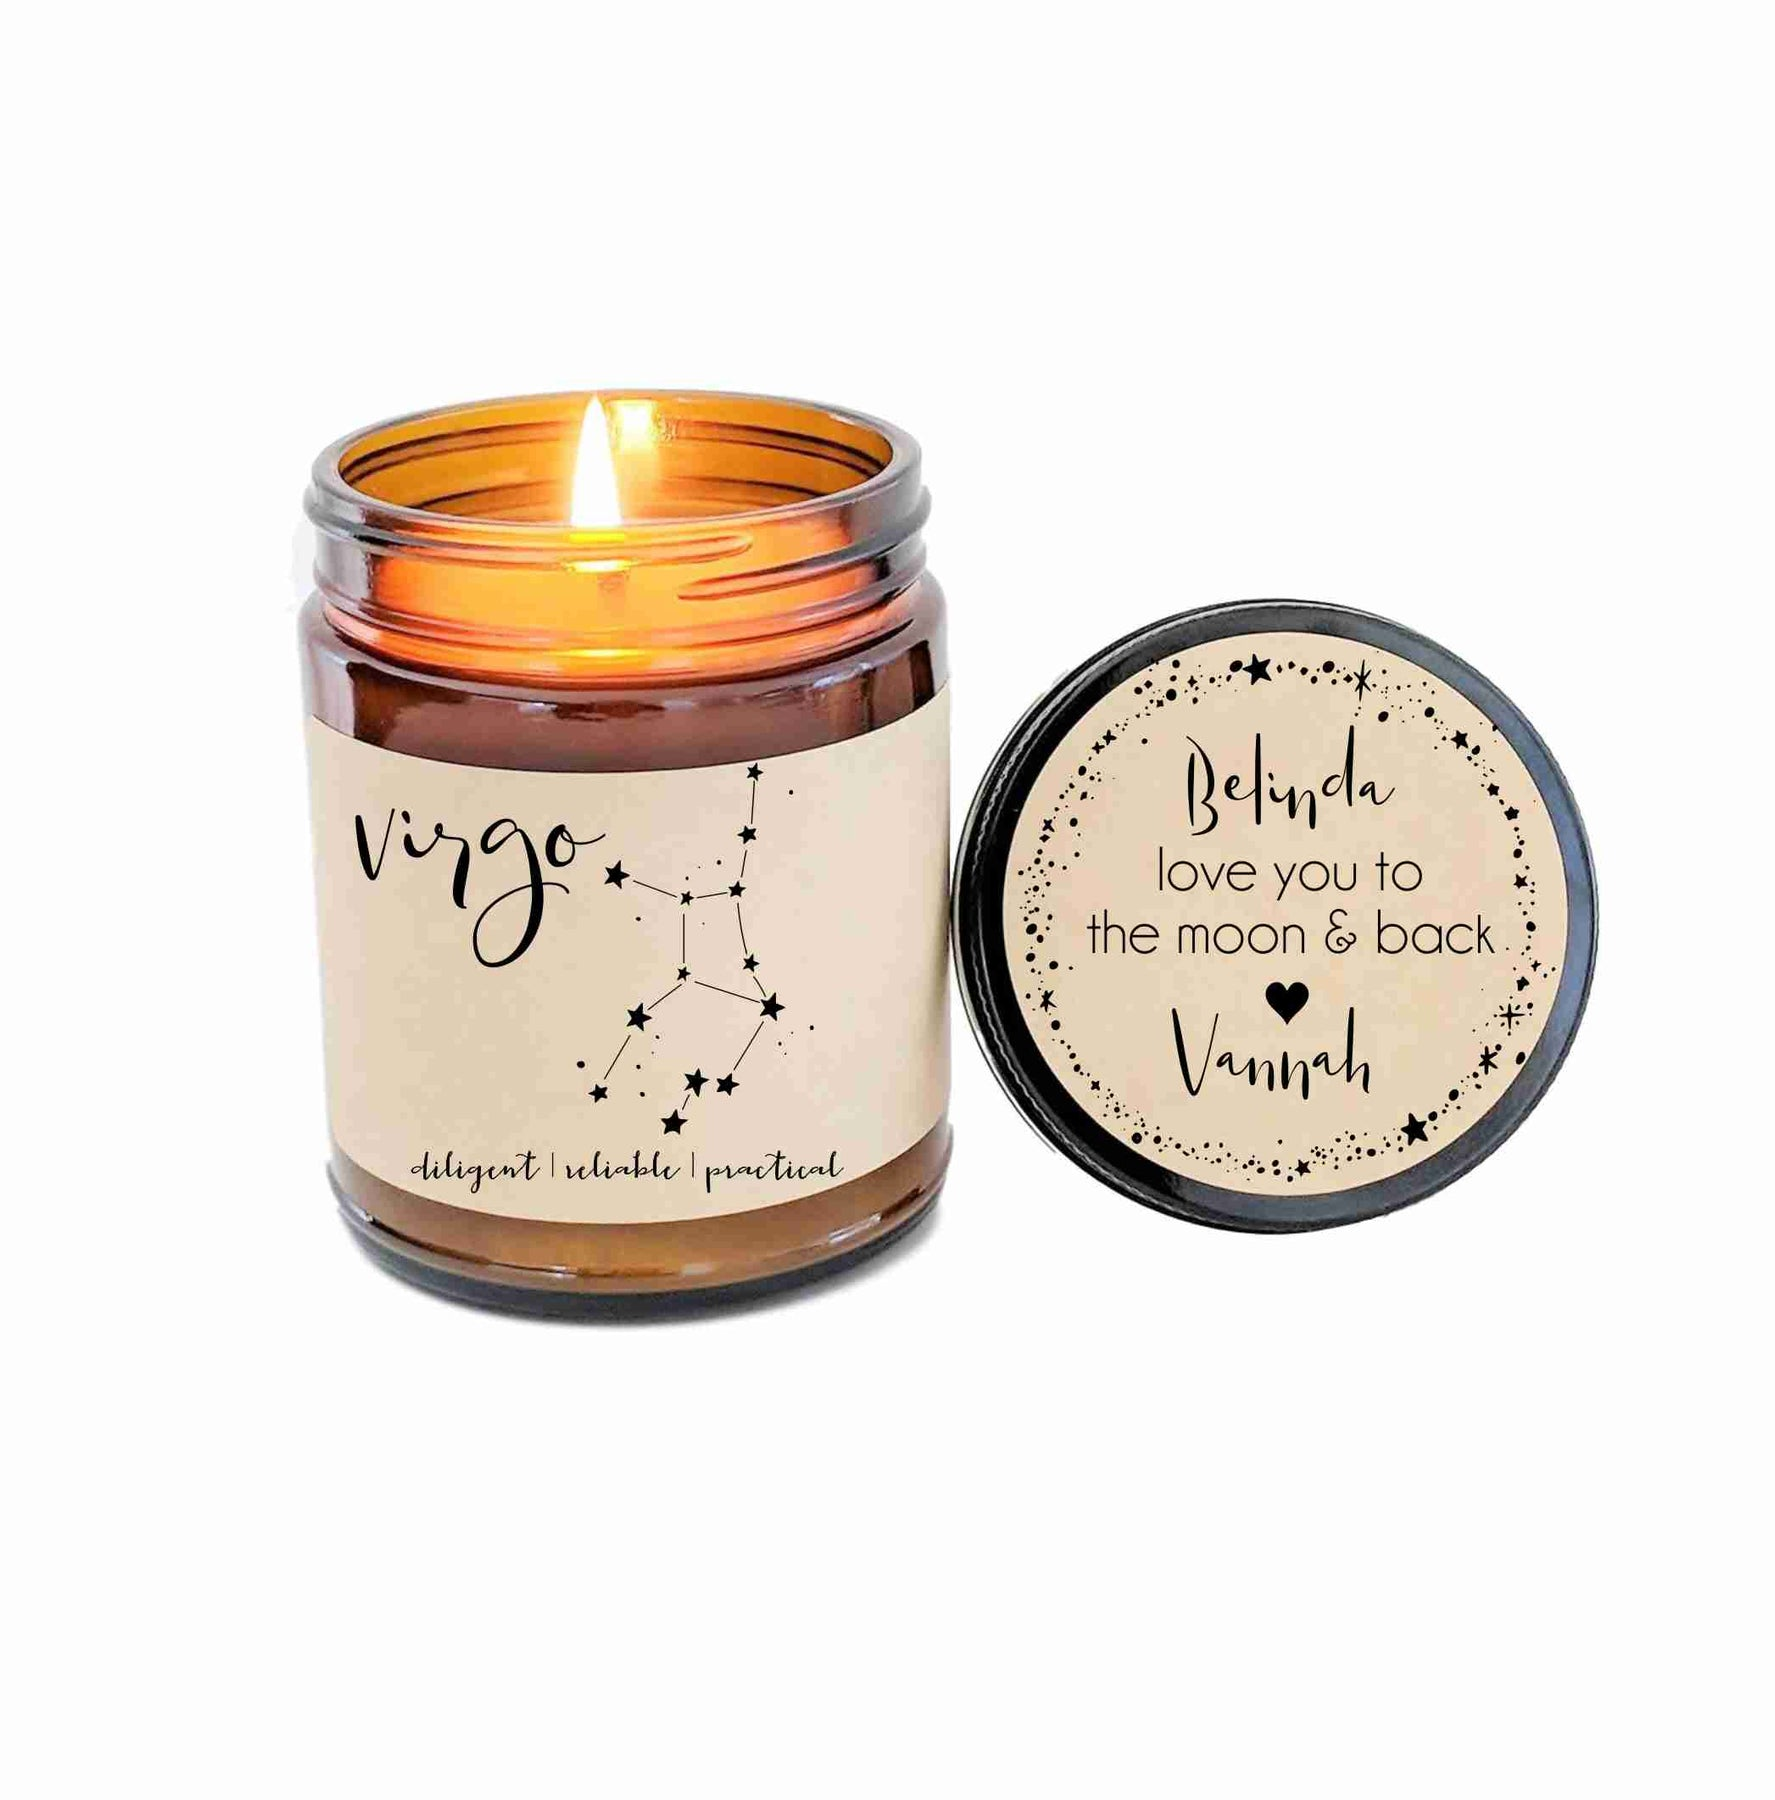 Gift For Her Astrology Candle Virgo Candle Gift For Him Funny Candle Horoscope Candle Gift For Friend Birthday Gift